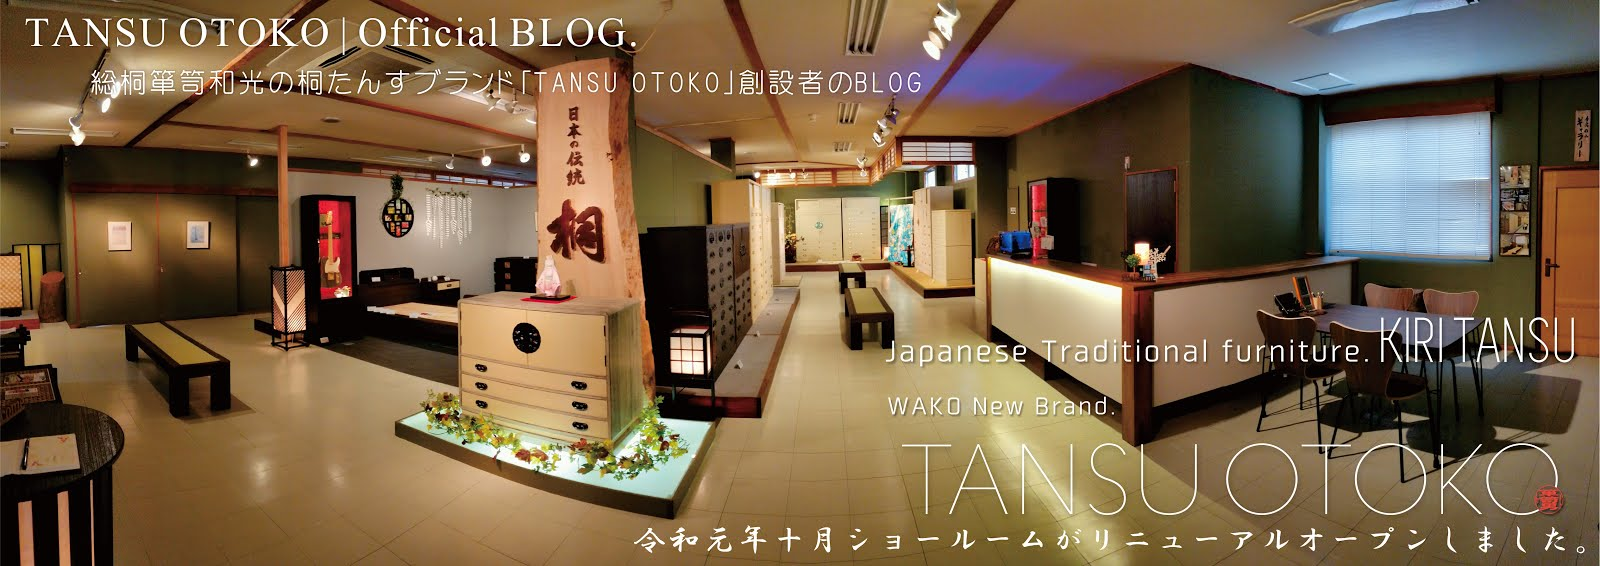 TANSU OTOKO | official BLOG.